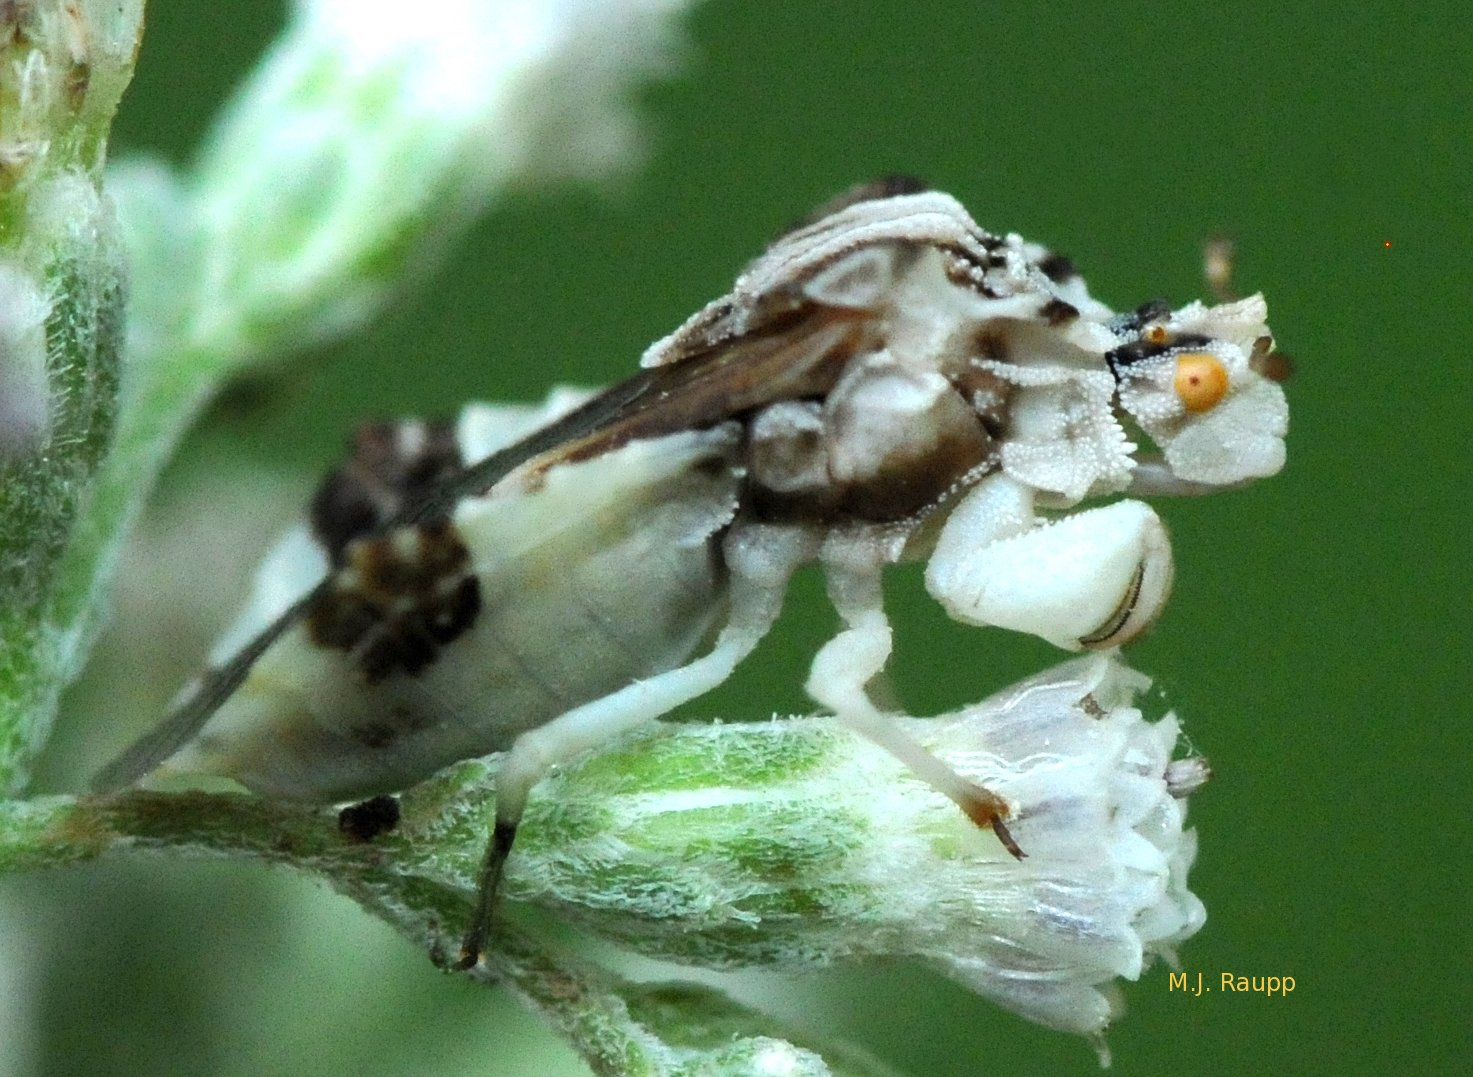 White and brown match the colors of boneset.